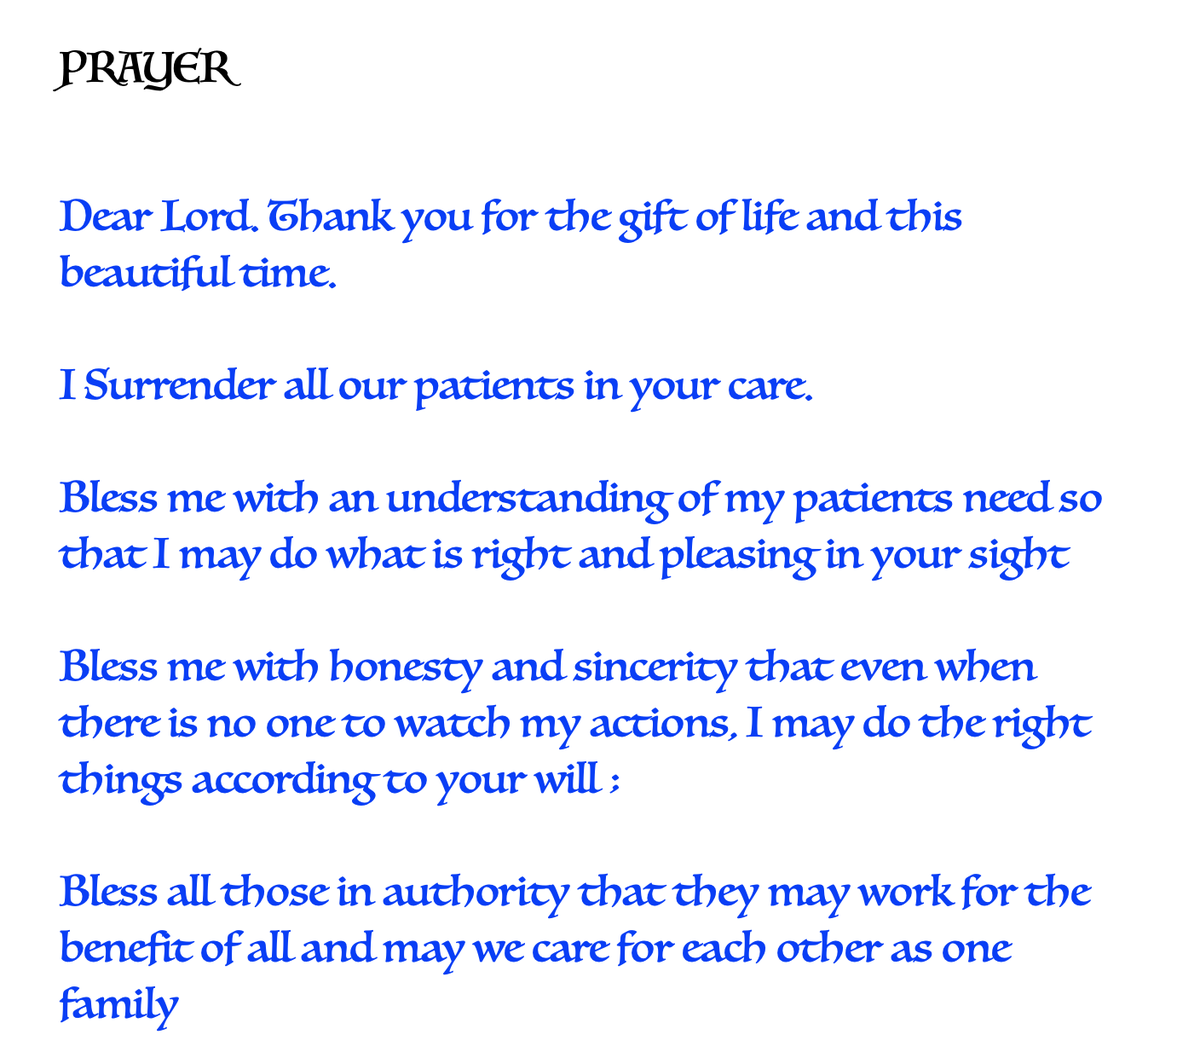 T 3609 - T 3609 - ..they work in extreme conditions, so our conditions are safe .. the Gods own angels in white PPE units , Doctors, nurses, support staff .. yet they still take time out to pray for who they struggle to cure - their patients ! This be their prayer everyday .. 🙏 https://t.co/8T6OMuC2SD